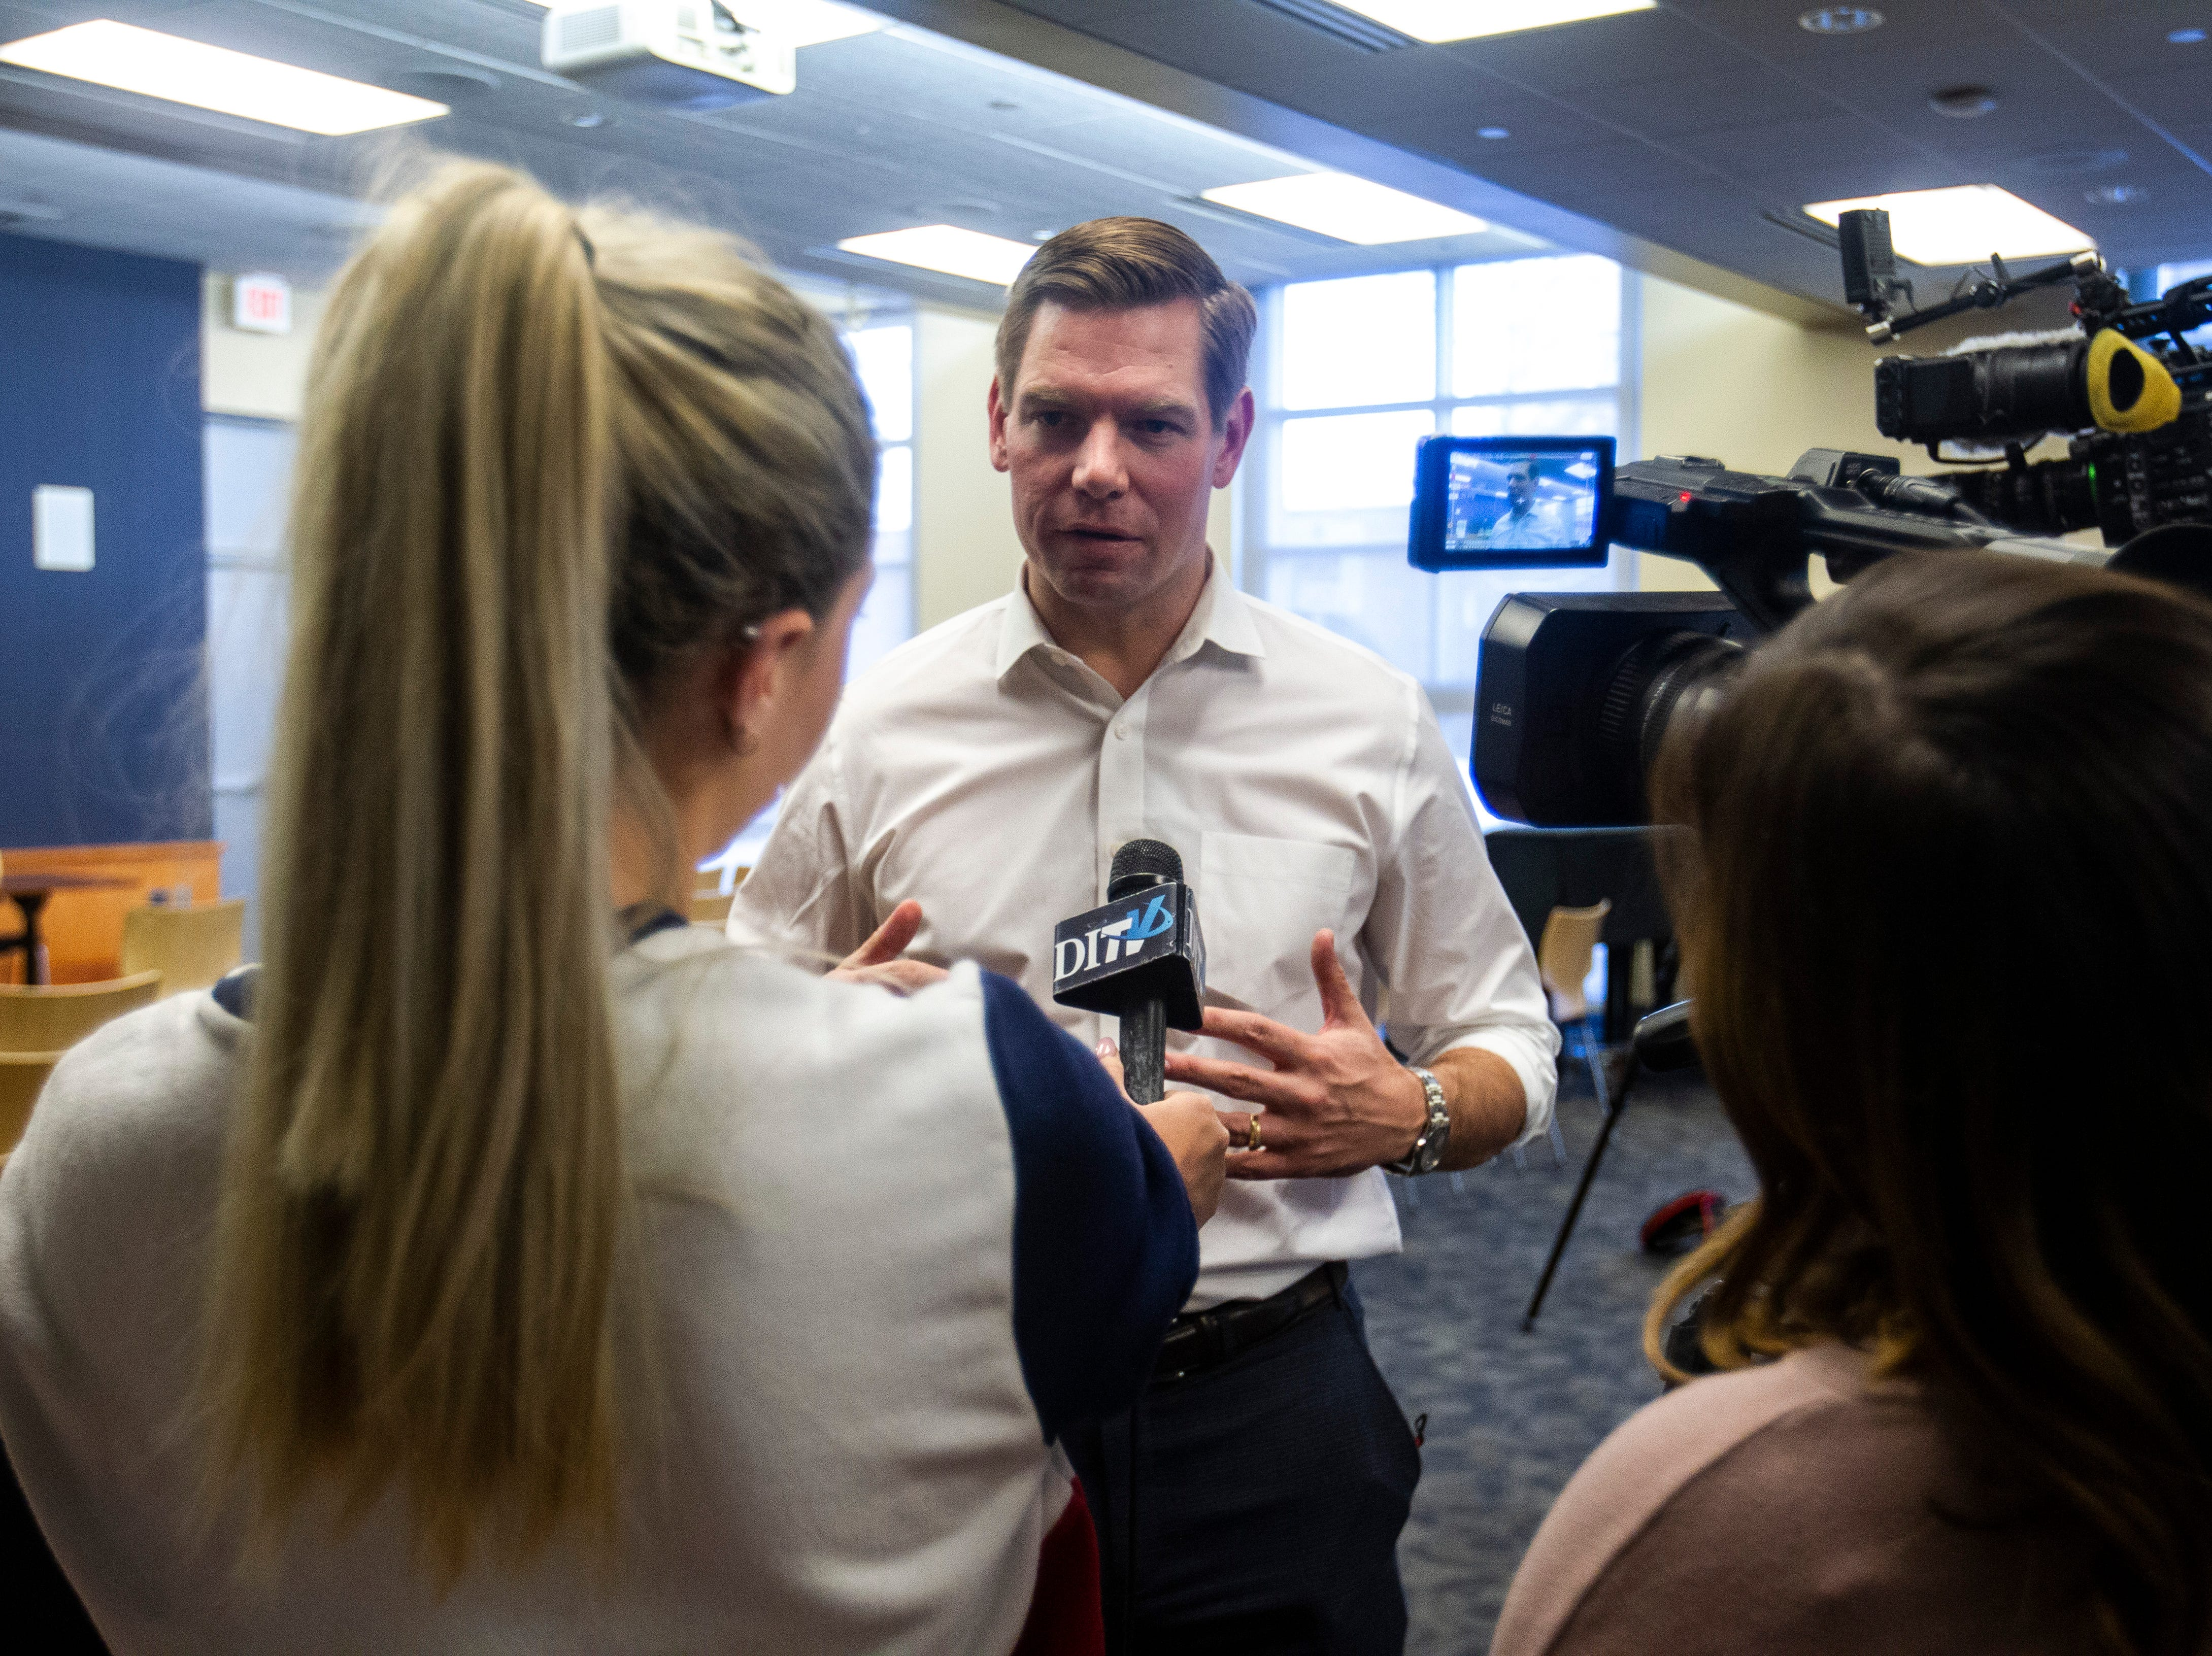 U.S. Rep. Eric Swalwell, D-Calif., speaks during an interview with DITV, the independent student-run broadcast associated with The Daily Iowan newspaper on the University of Iowa campus, after a Working Hero Iowa event on Monday, Feb. 18, 2019 at the Public Library in Iowa City, Iowa.